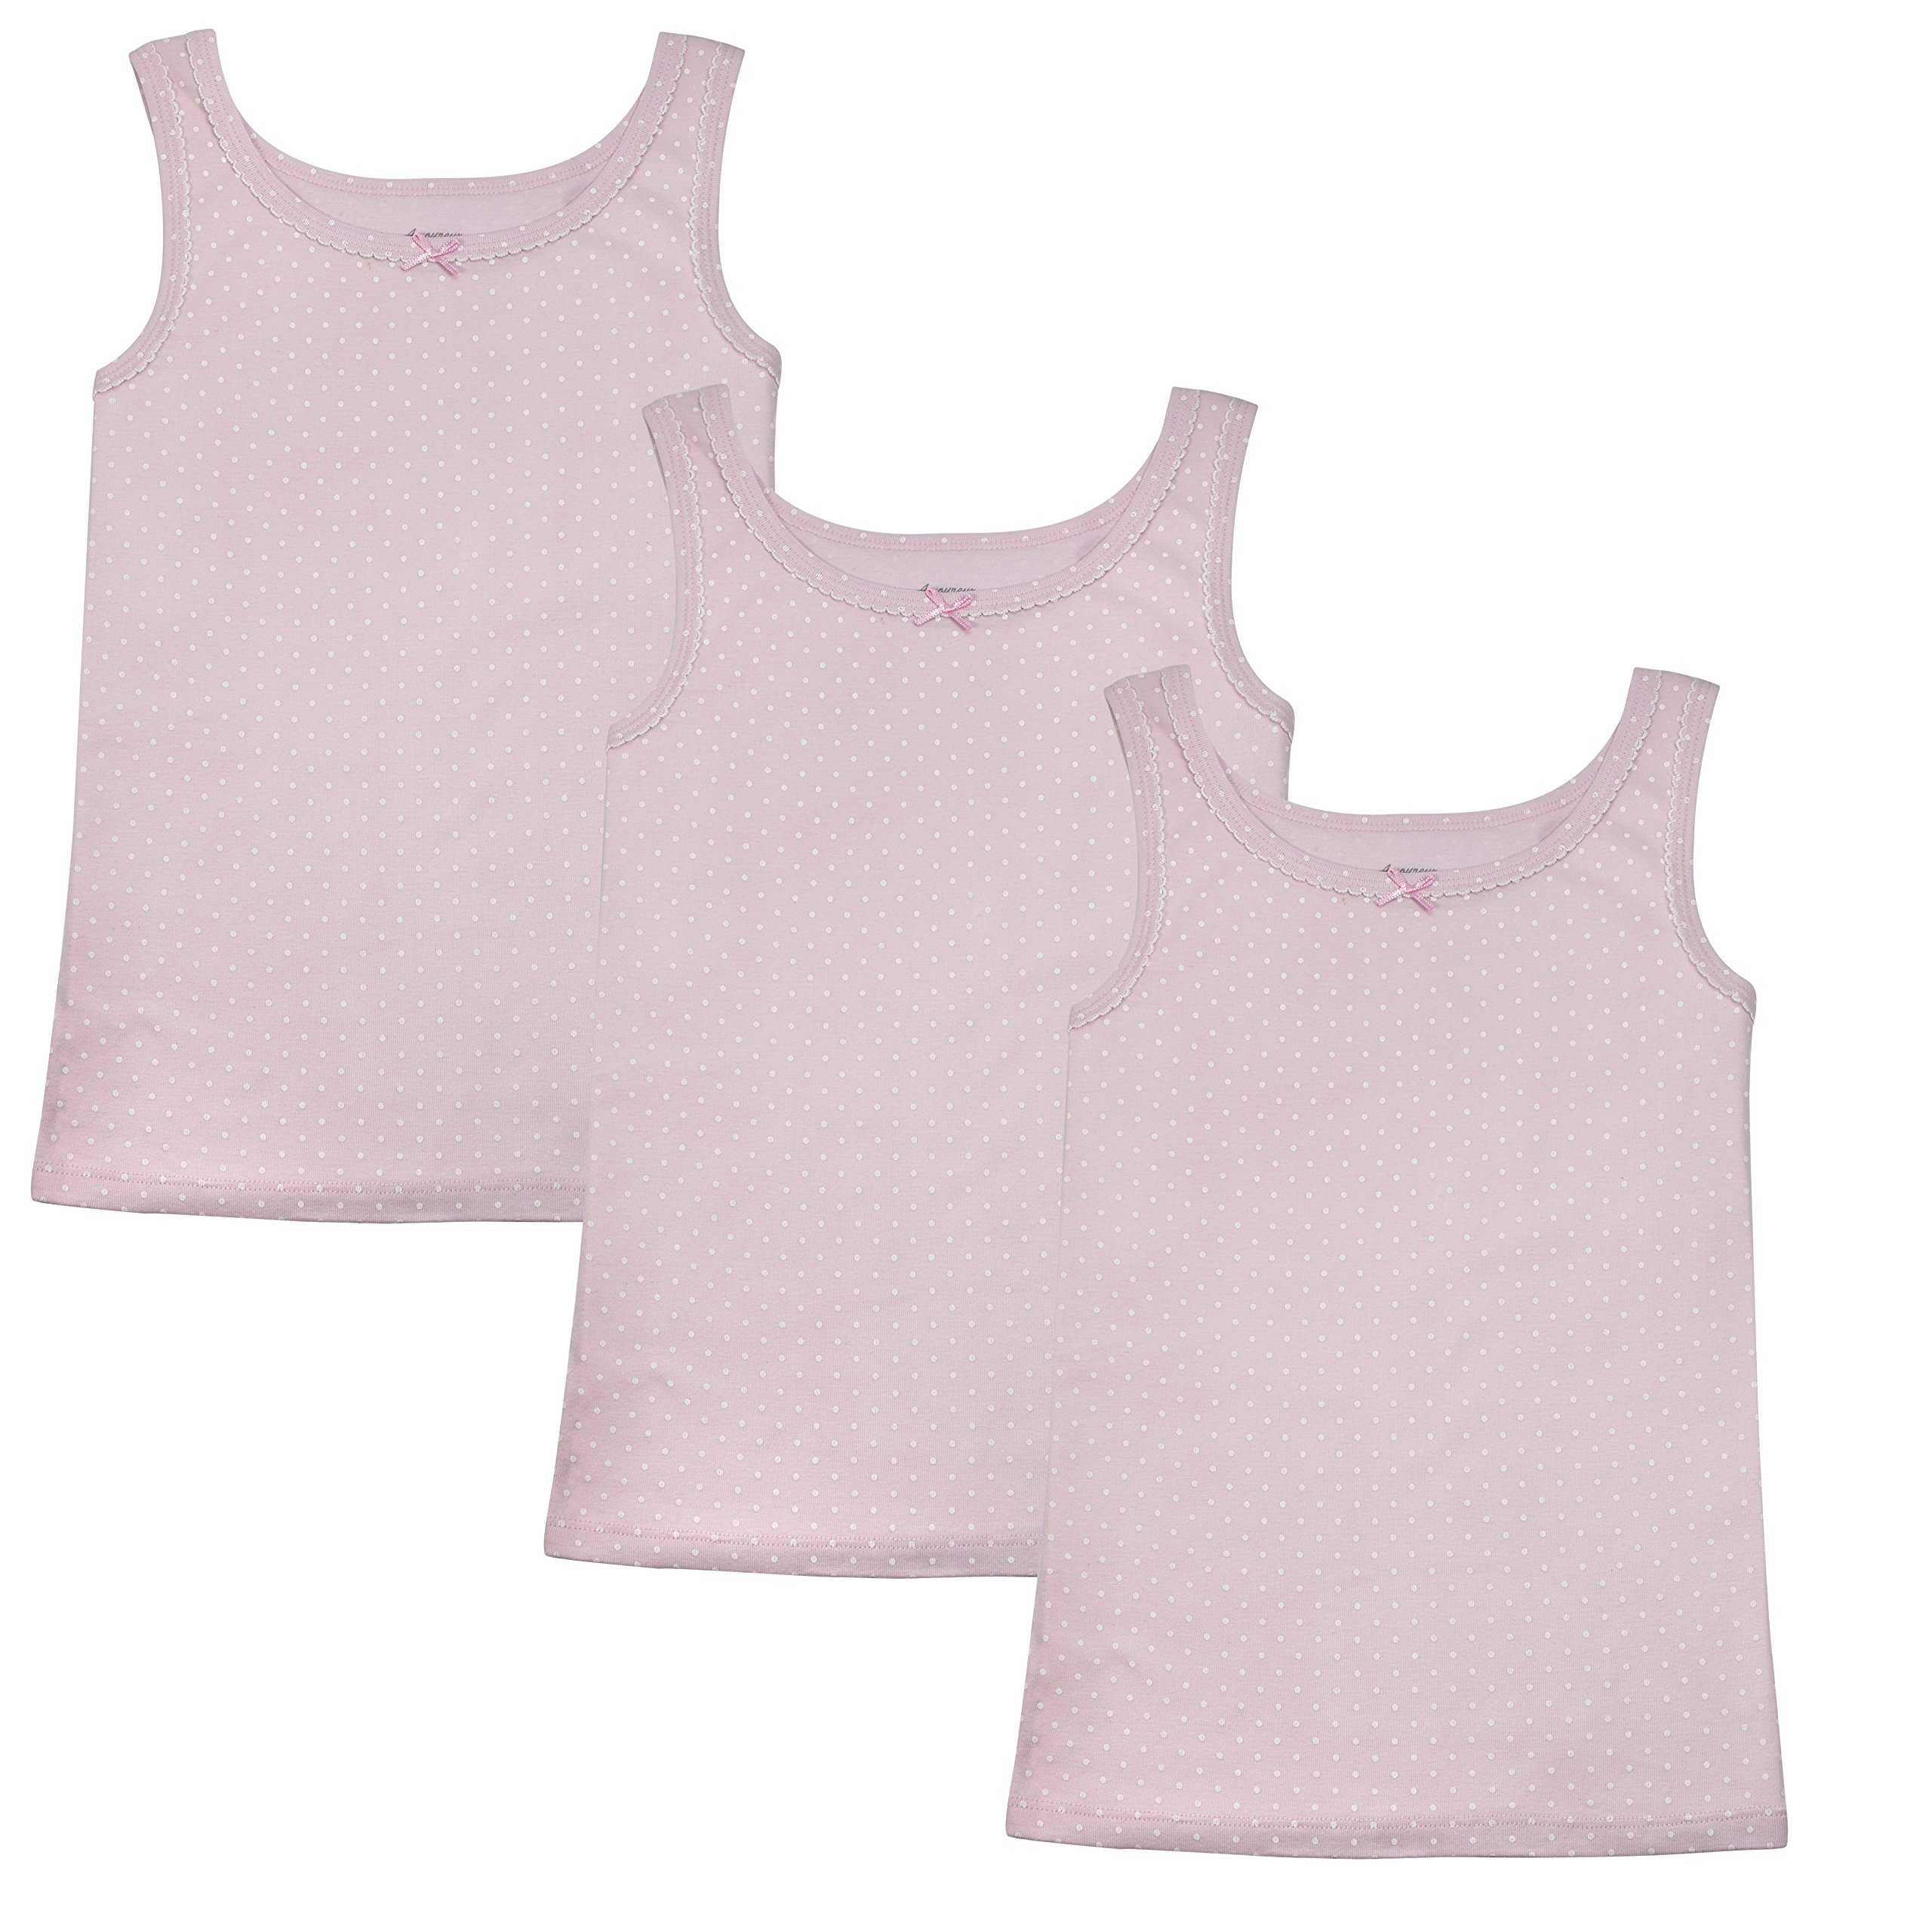 Amoureux Bebe Camisole Undershirts For Toddlers & Girls- Extra Soft Turkish Cotton Tank Tops- Pink Background With White Polka Dots, Size 6-7 (3 Pack)